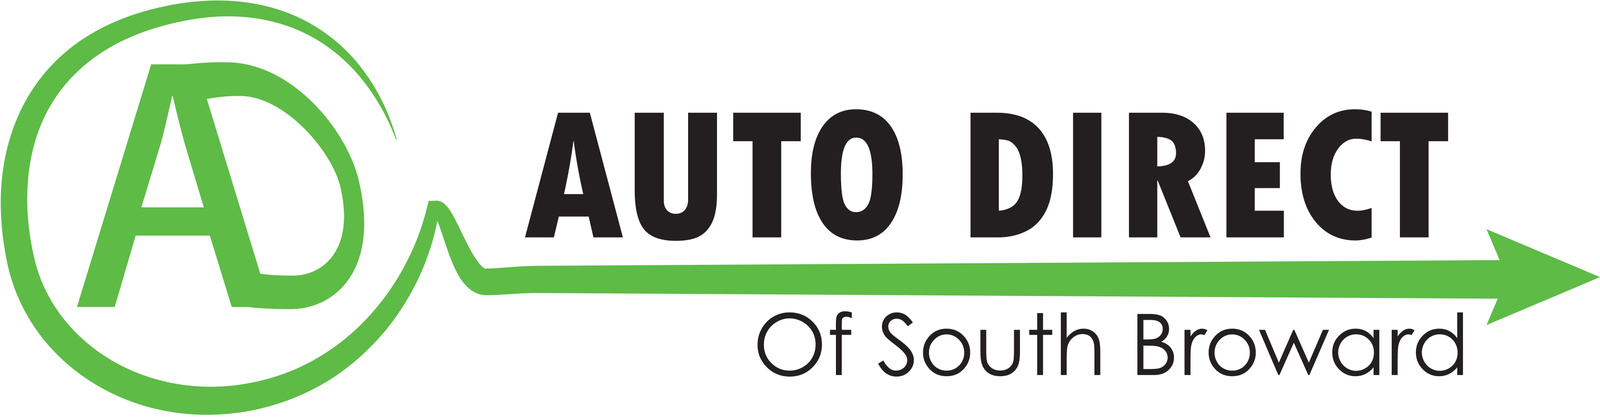 Auto direct of south broward 14